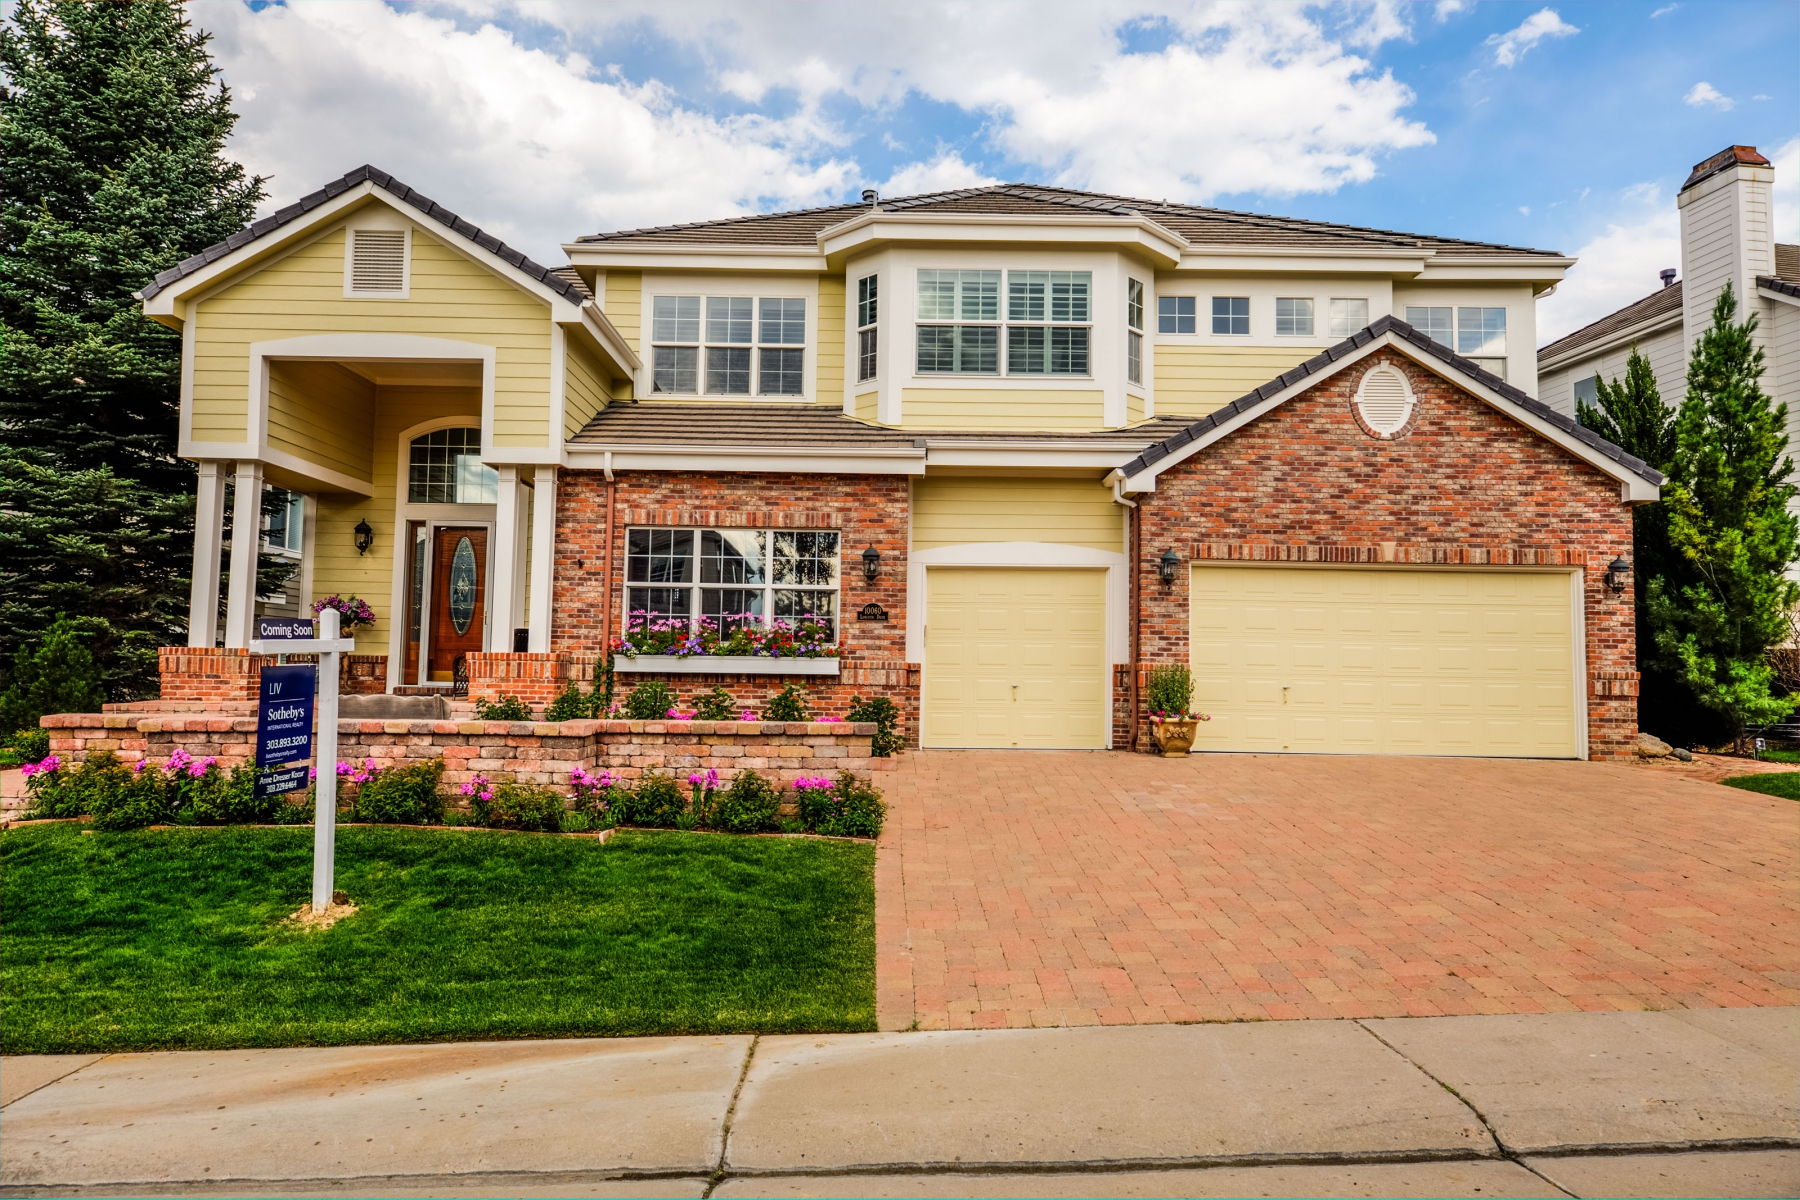 Single Family Home for Sale at Golf Course Views 10060 Longview Drive Lone Tree, Colorado 80124 United States